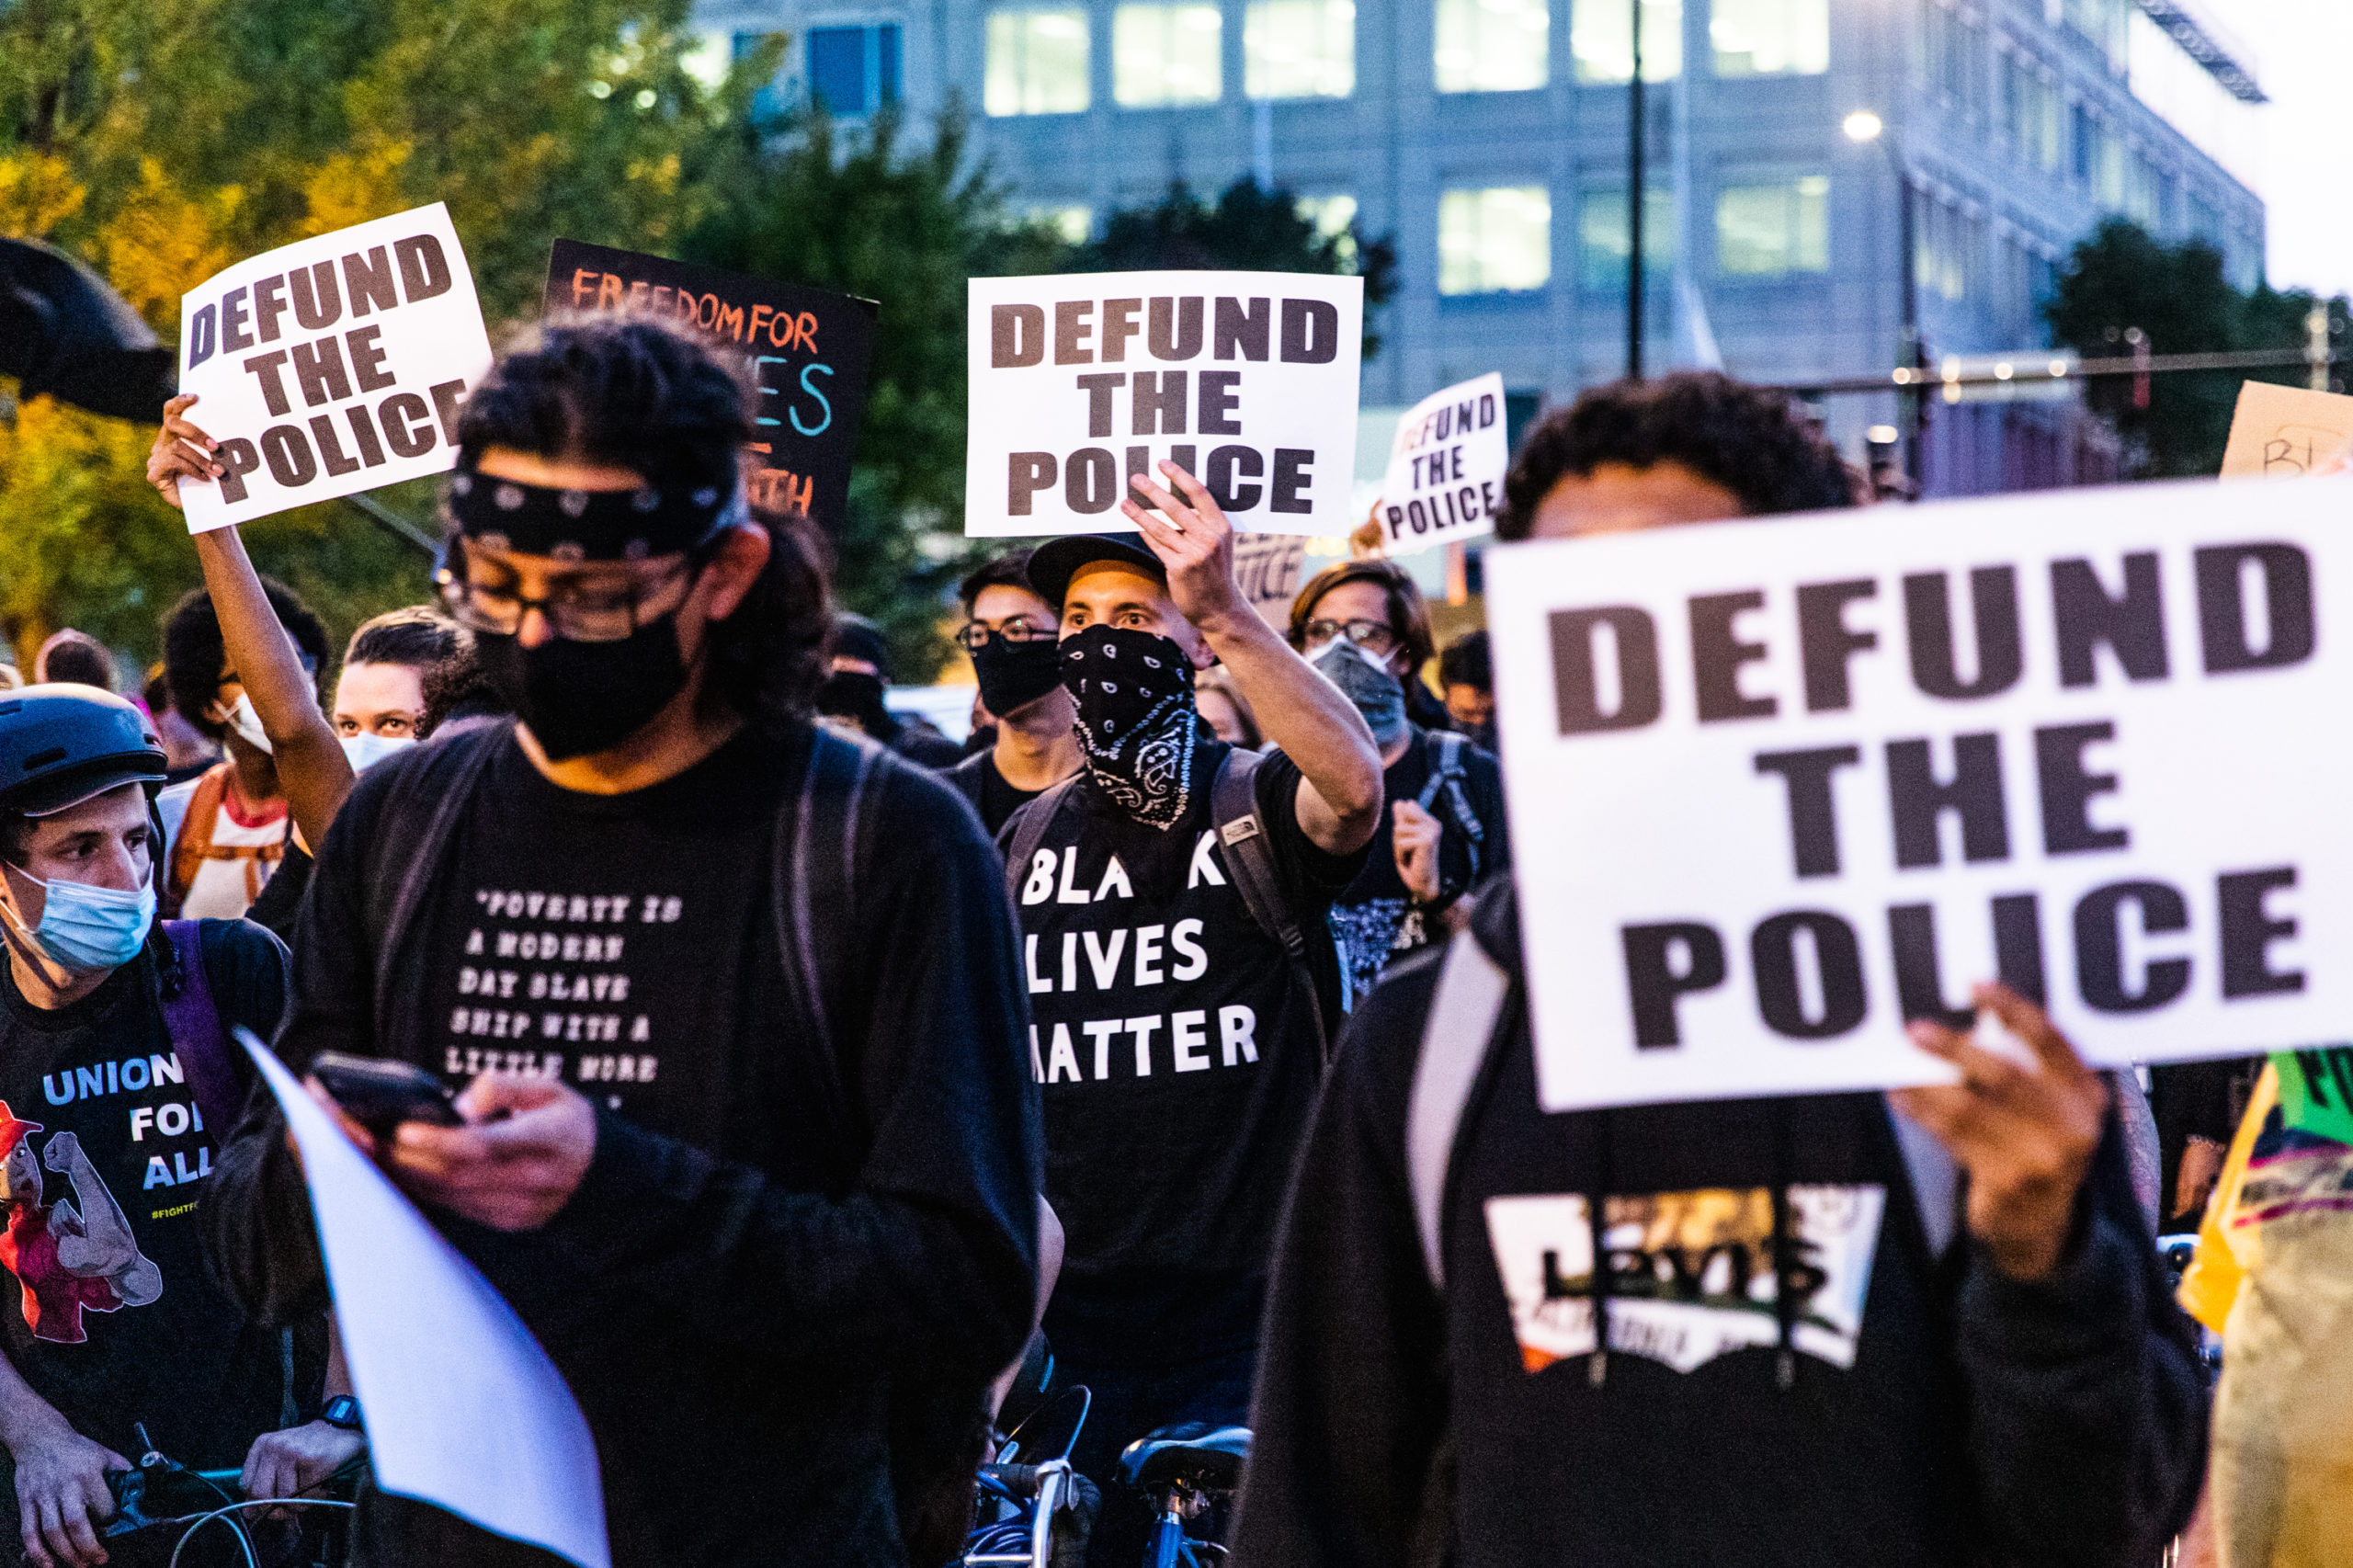 Protesters carry signs in support of defunding the police during a march on Sept. 23 in Chicago, Illinois. (Natasha Moustache/Getty Images)